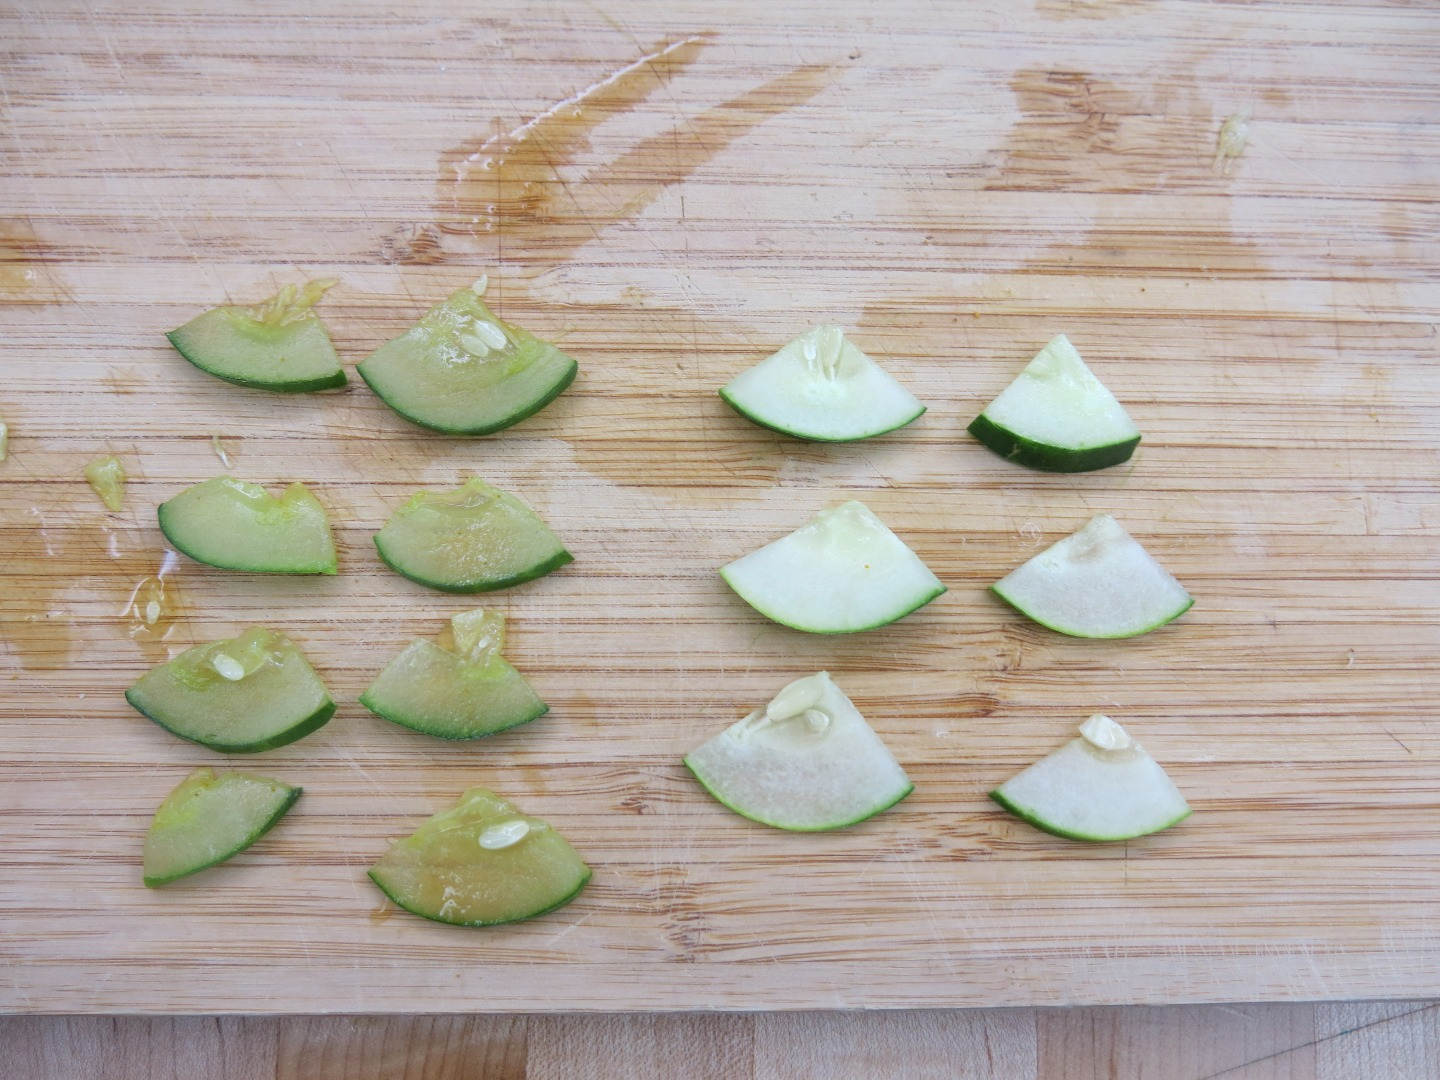 Picture of Instant Pickles! (30 Second Vacuum Pickles!)